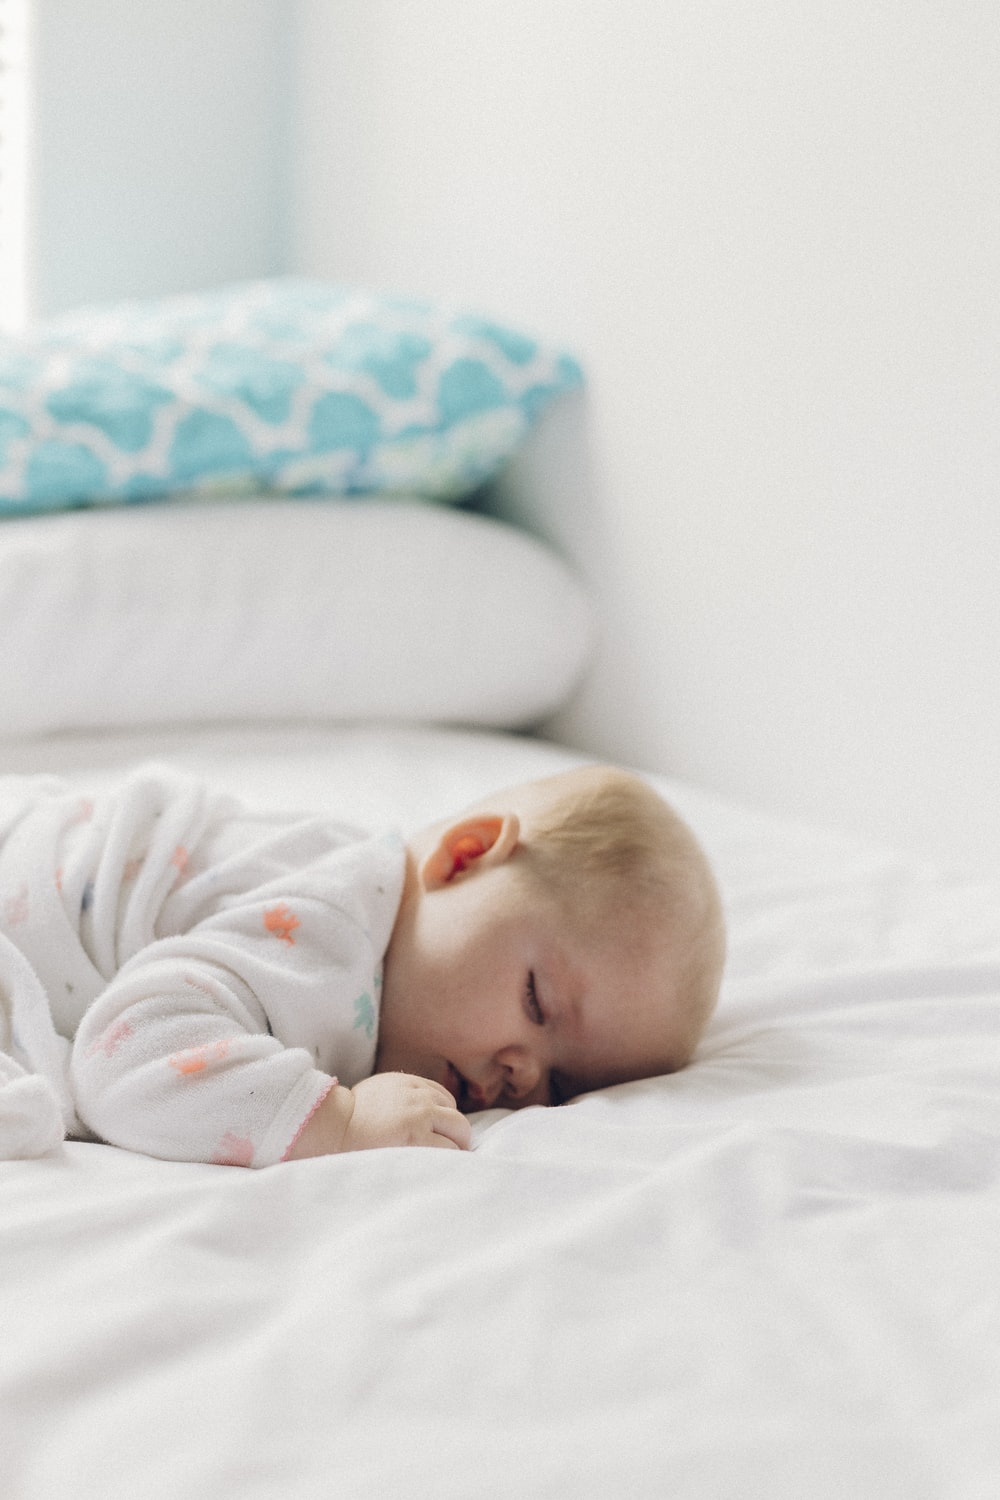 A Baby Sleeping Peacefully On Bed